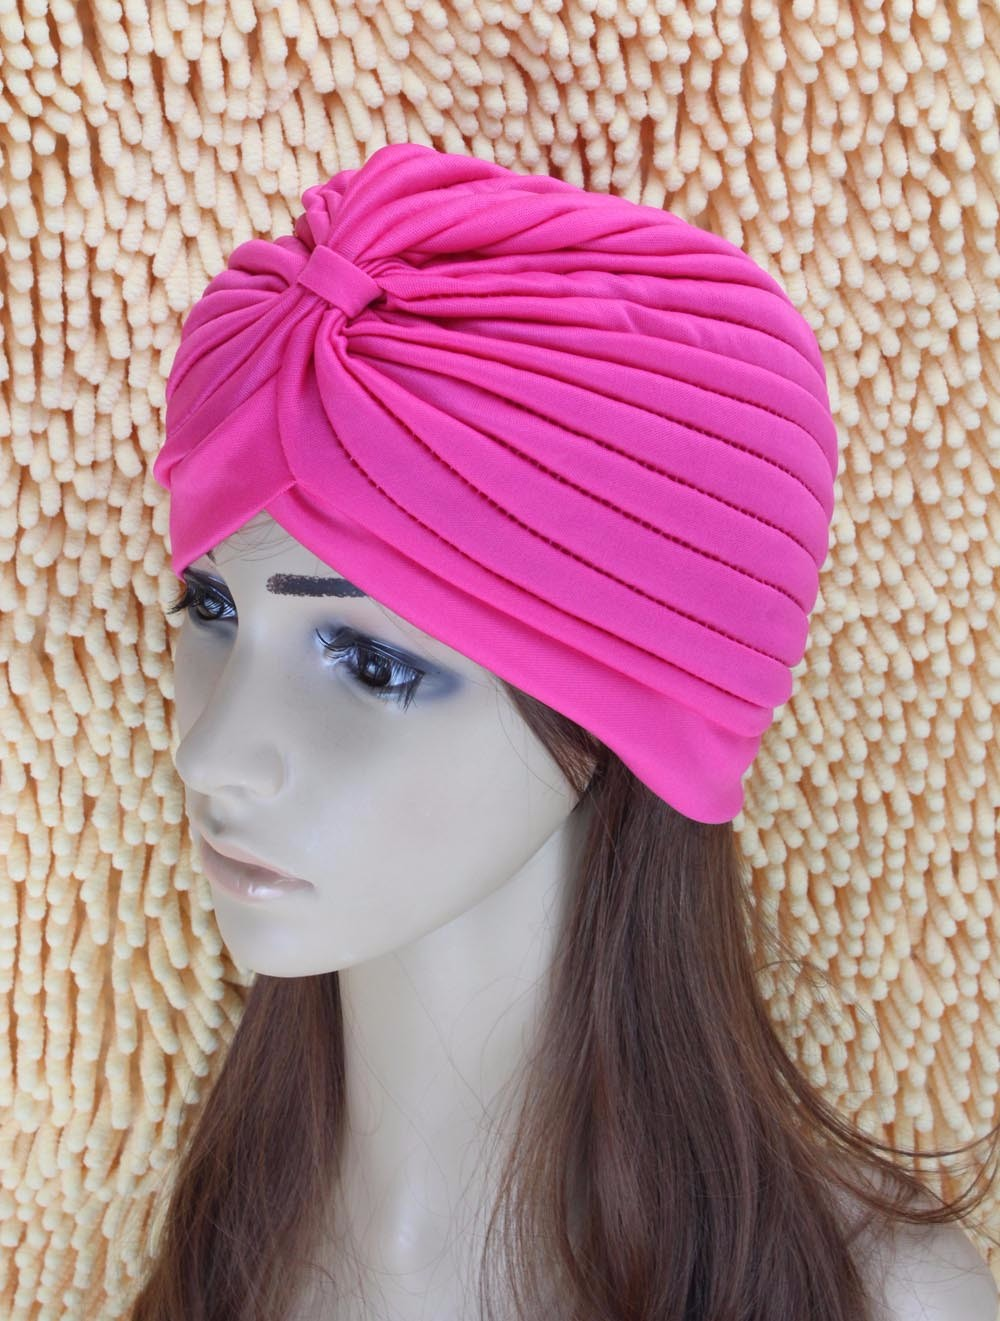 2016 New Fashion Women Turban Hat Bohemia 21 Solid Color Fold Beanies Female Simple Autumn Bonnet Indian Turban Hats For Women (29)